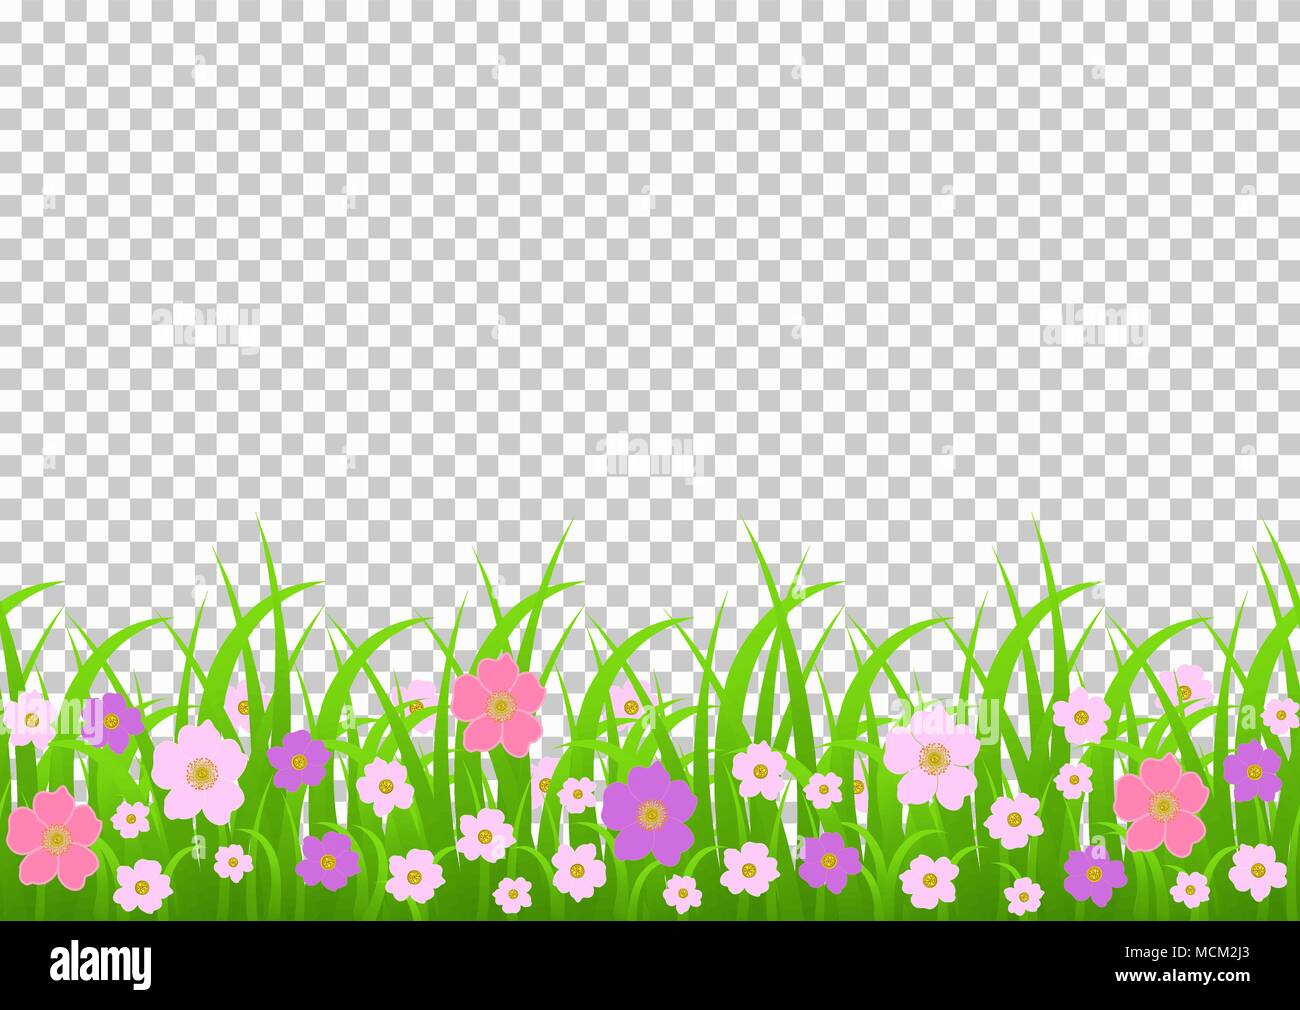 grass border no background real grass flowers and grass border pink meadow flowers green on transparent background vector illustration greeting card decoration element summ